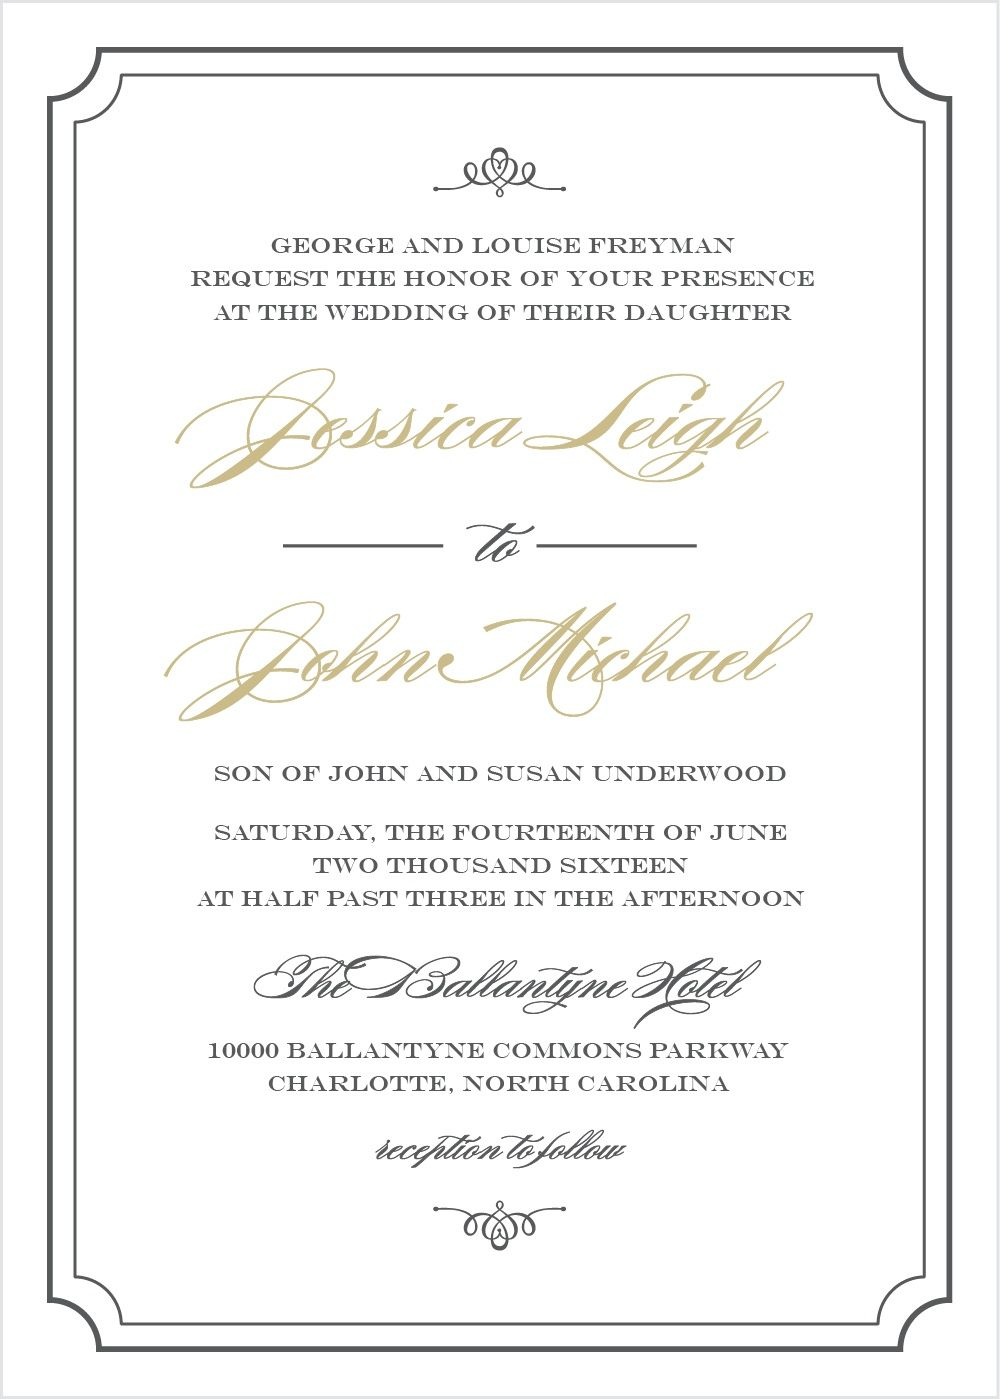 Elegant Script Wedding Invitations Traditional Wedding Invitation Wording Sample Wedding Invitation Wording Wedding Invitation Wording Examples